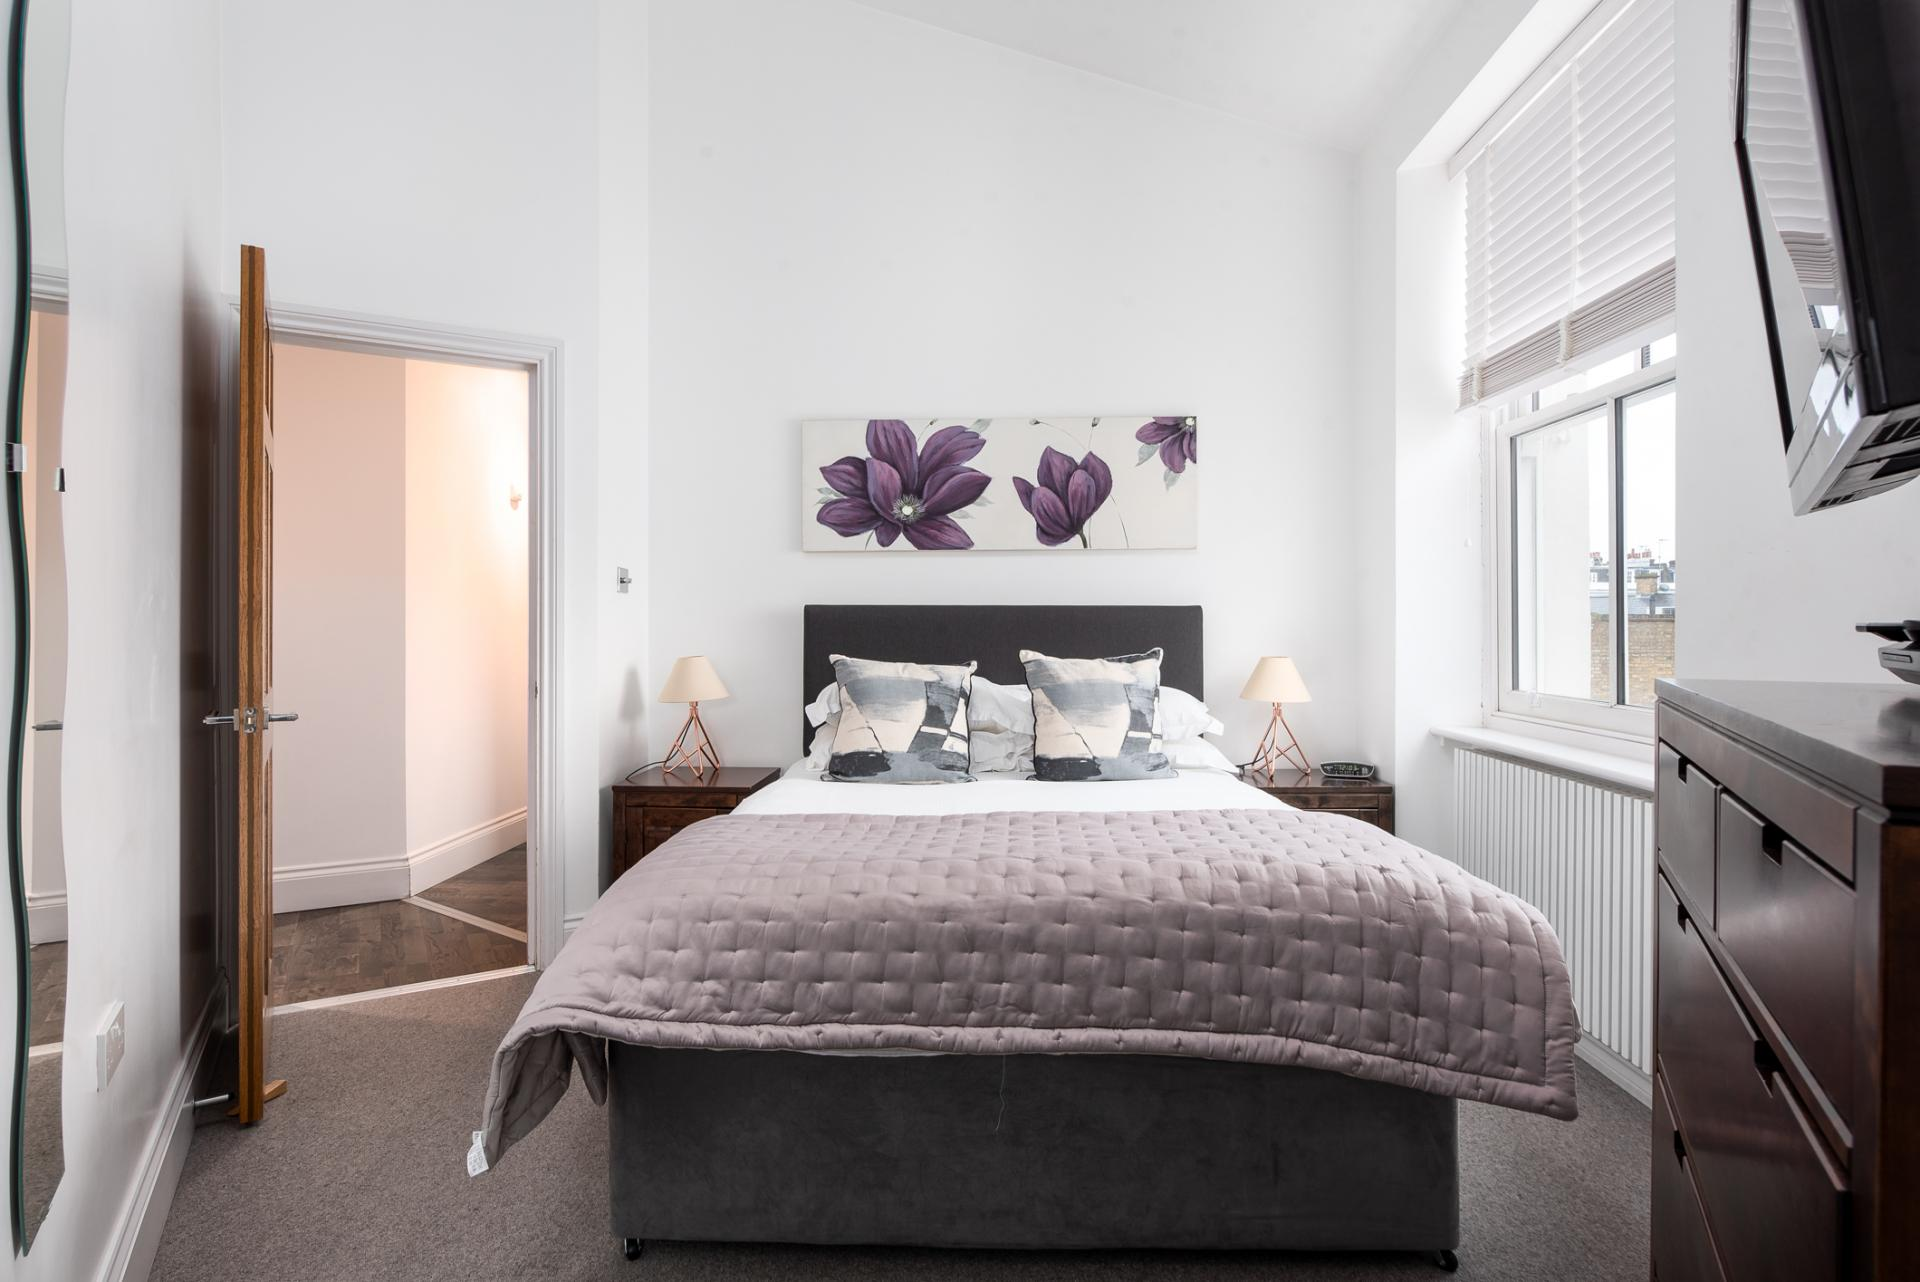 Bedroom at Chelsea Green Apartments, Chelsea, London